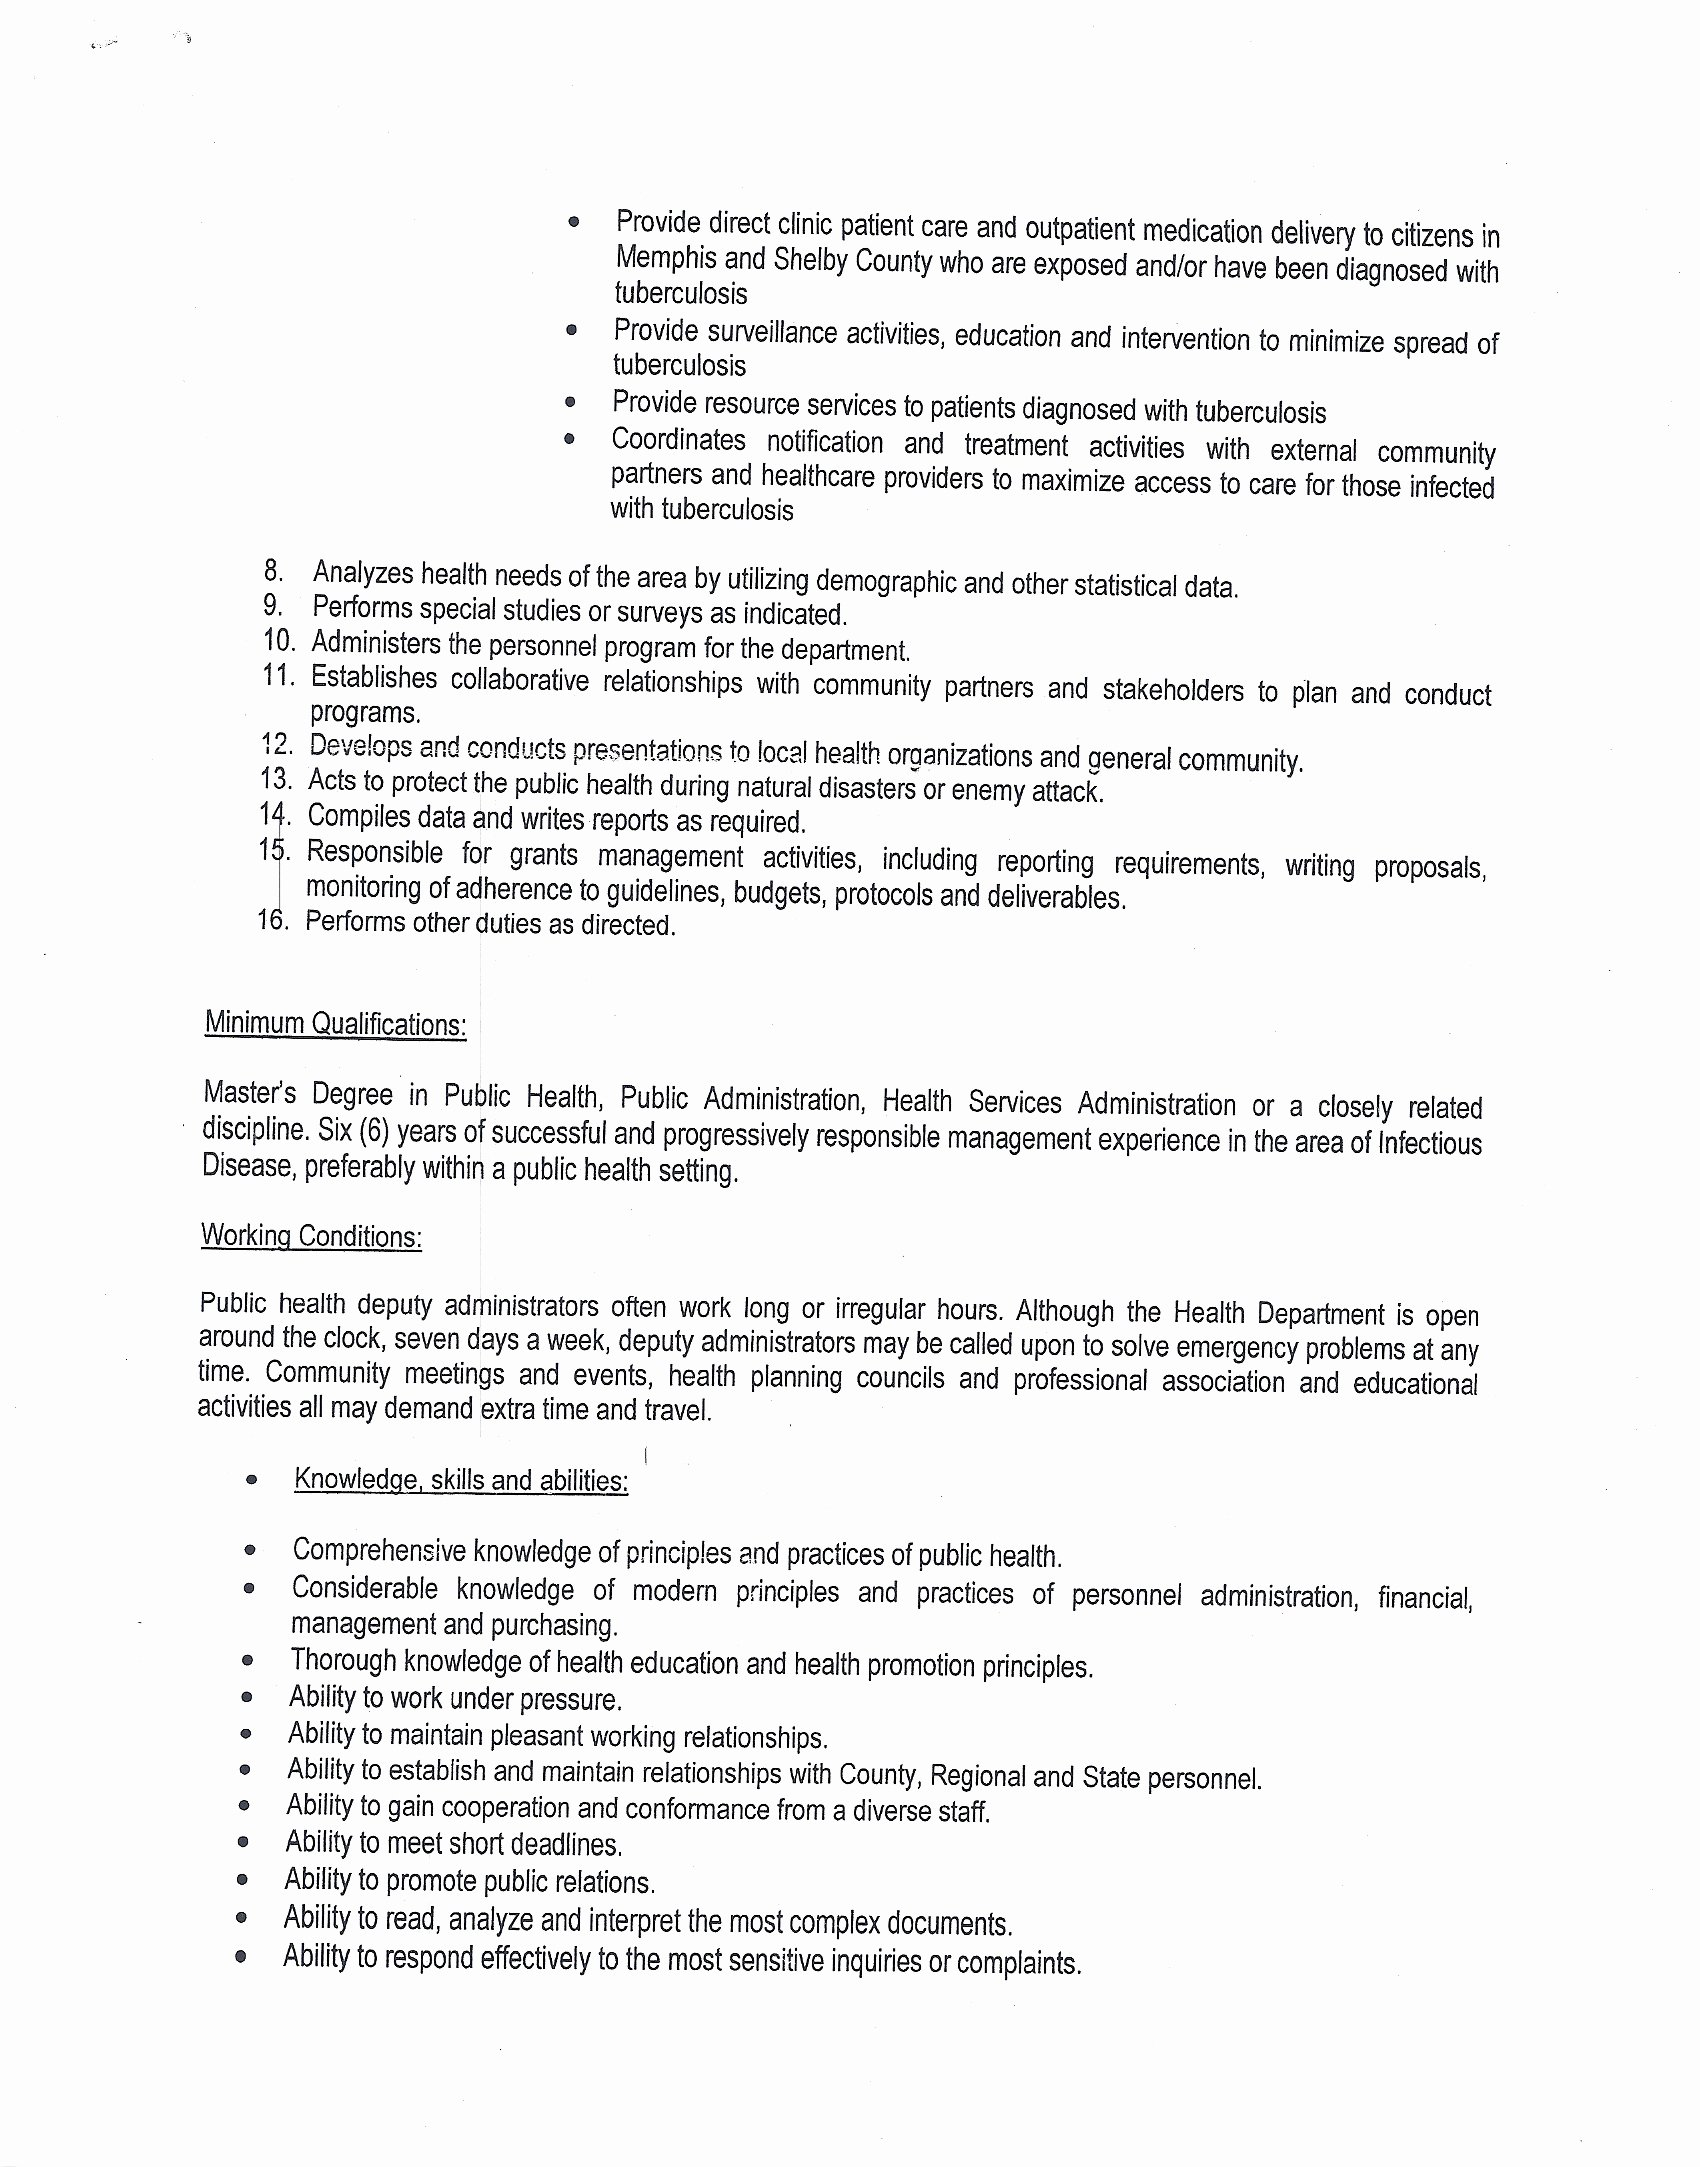 Email Resume Cover Letter New Email Resume and Cover Letter to Gregory Bethel